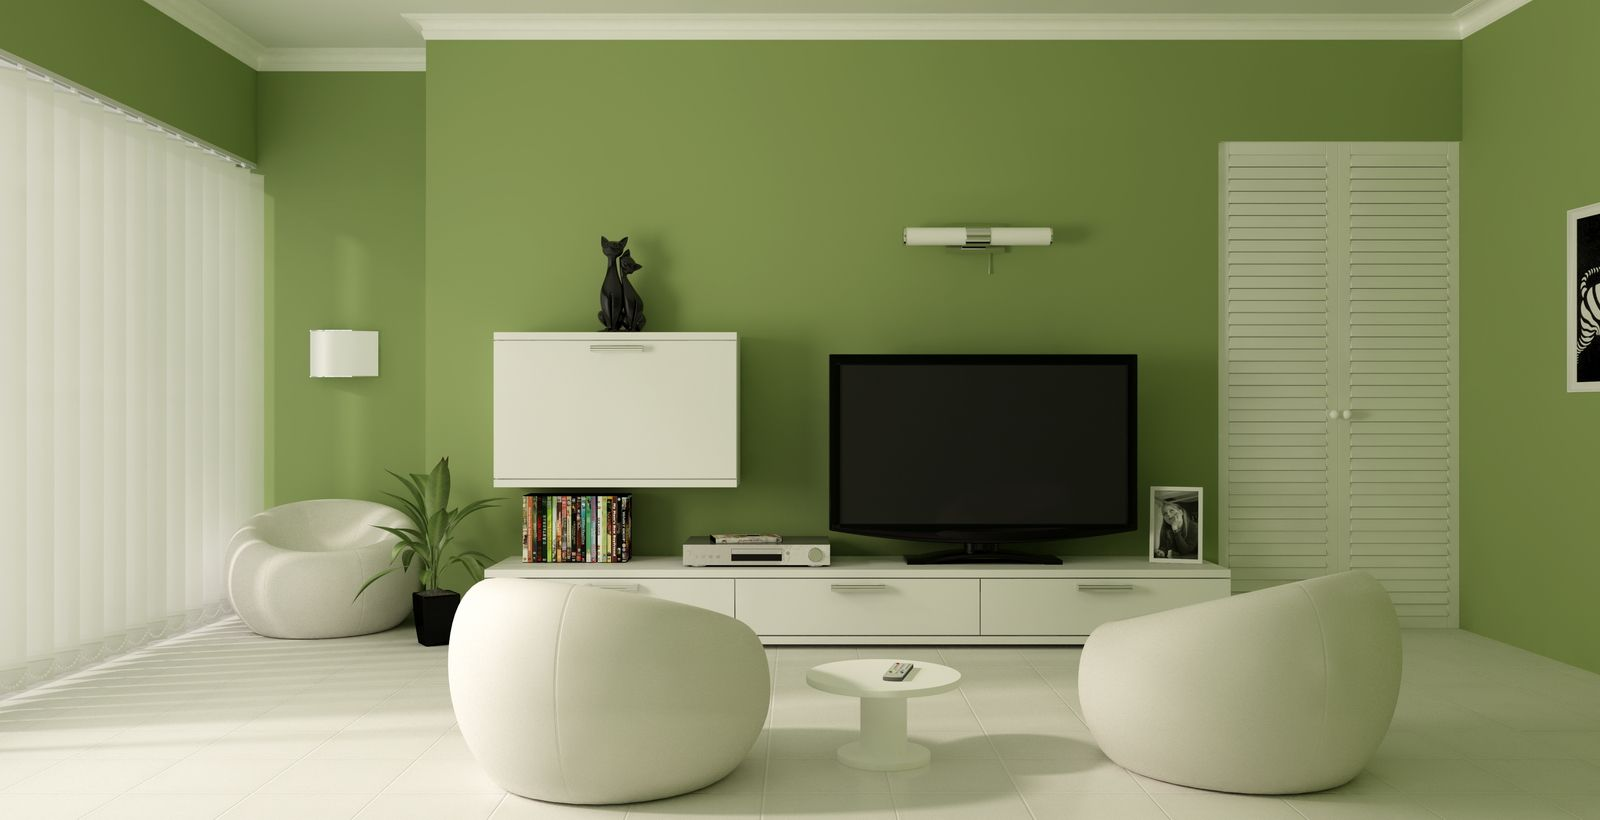 Green Paint Colors For Living Room I Want A Brighter Green In My Living Roomi Like This But Will